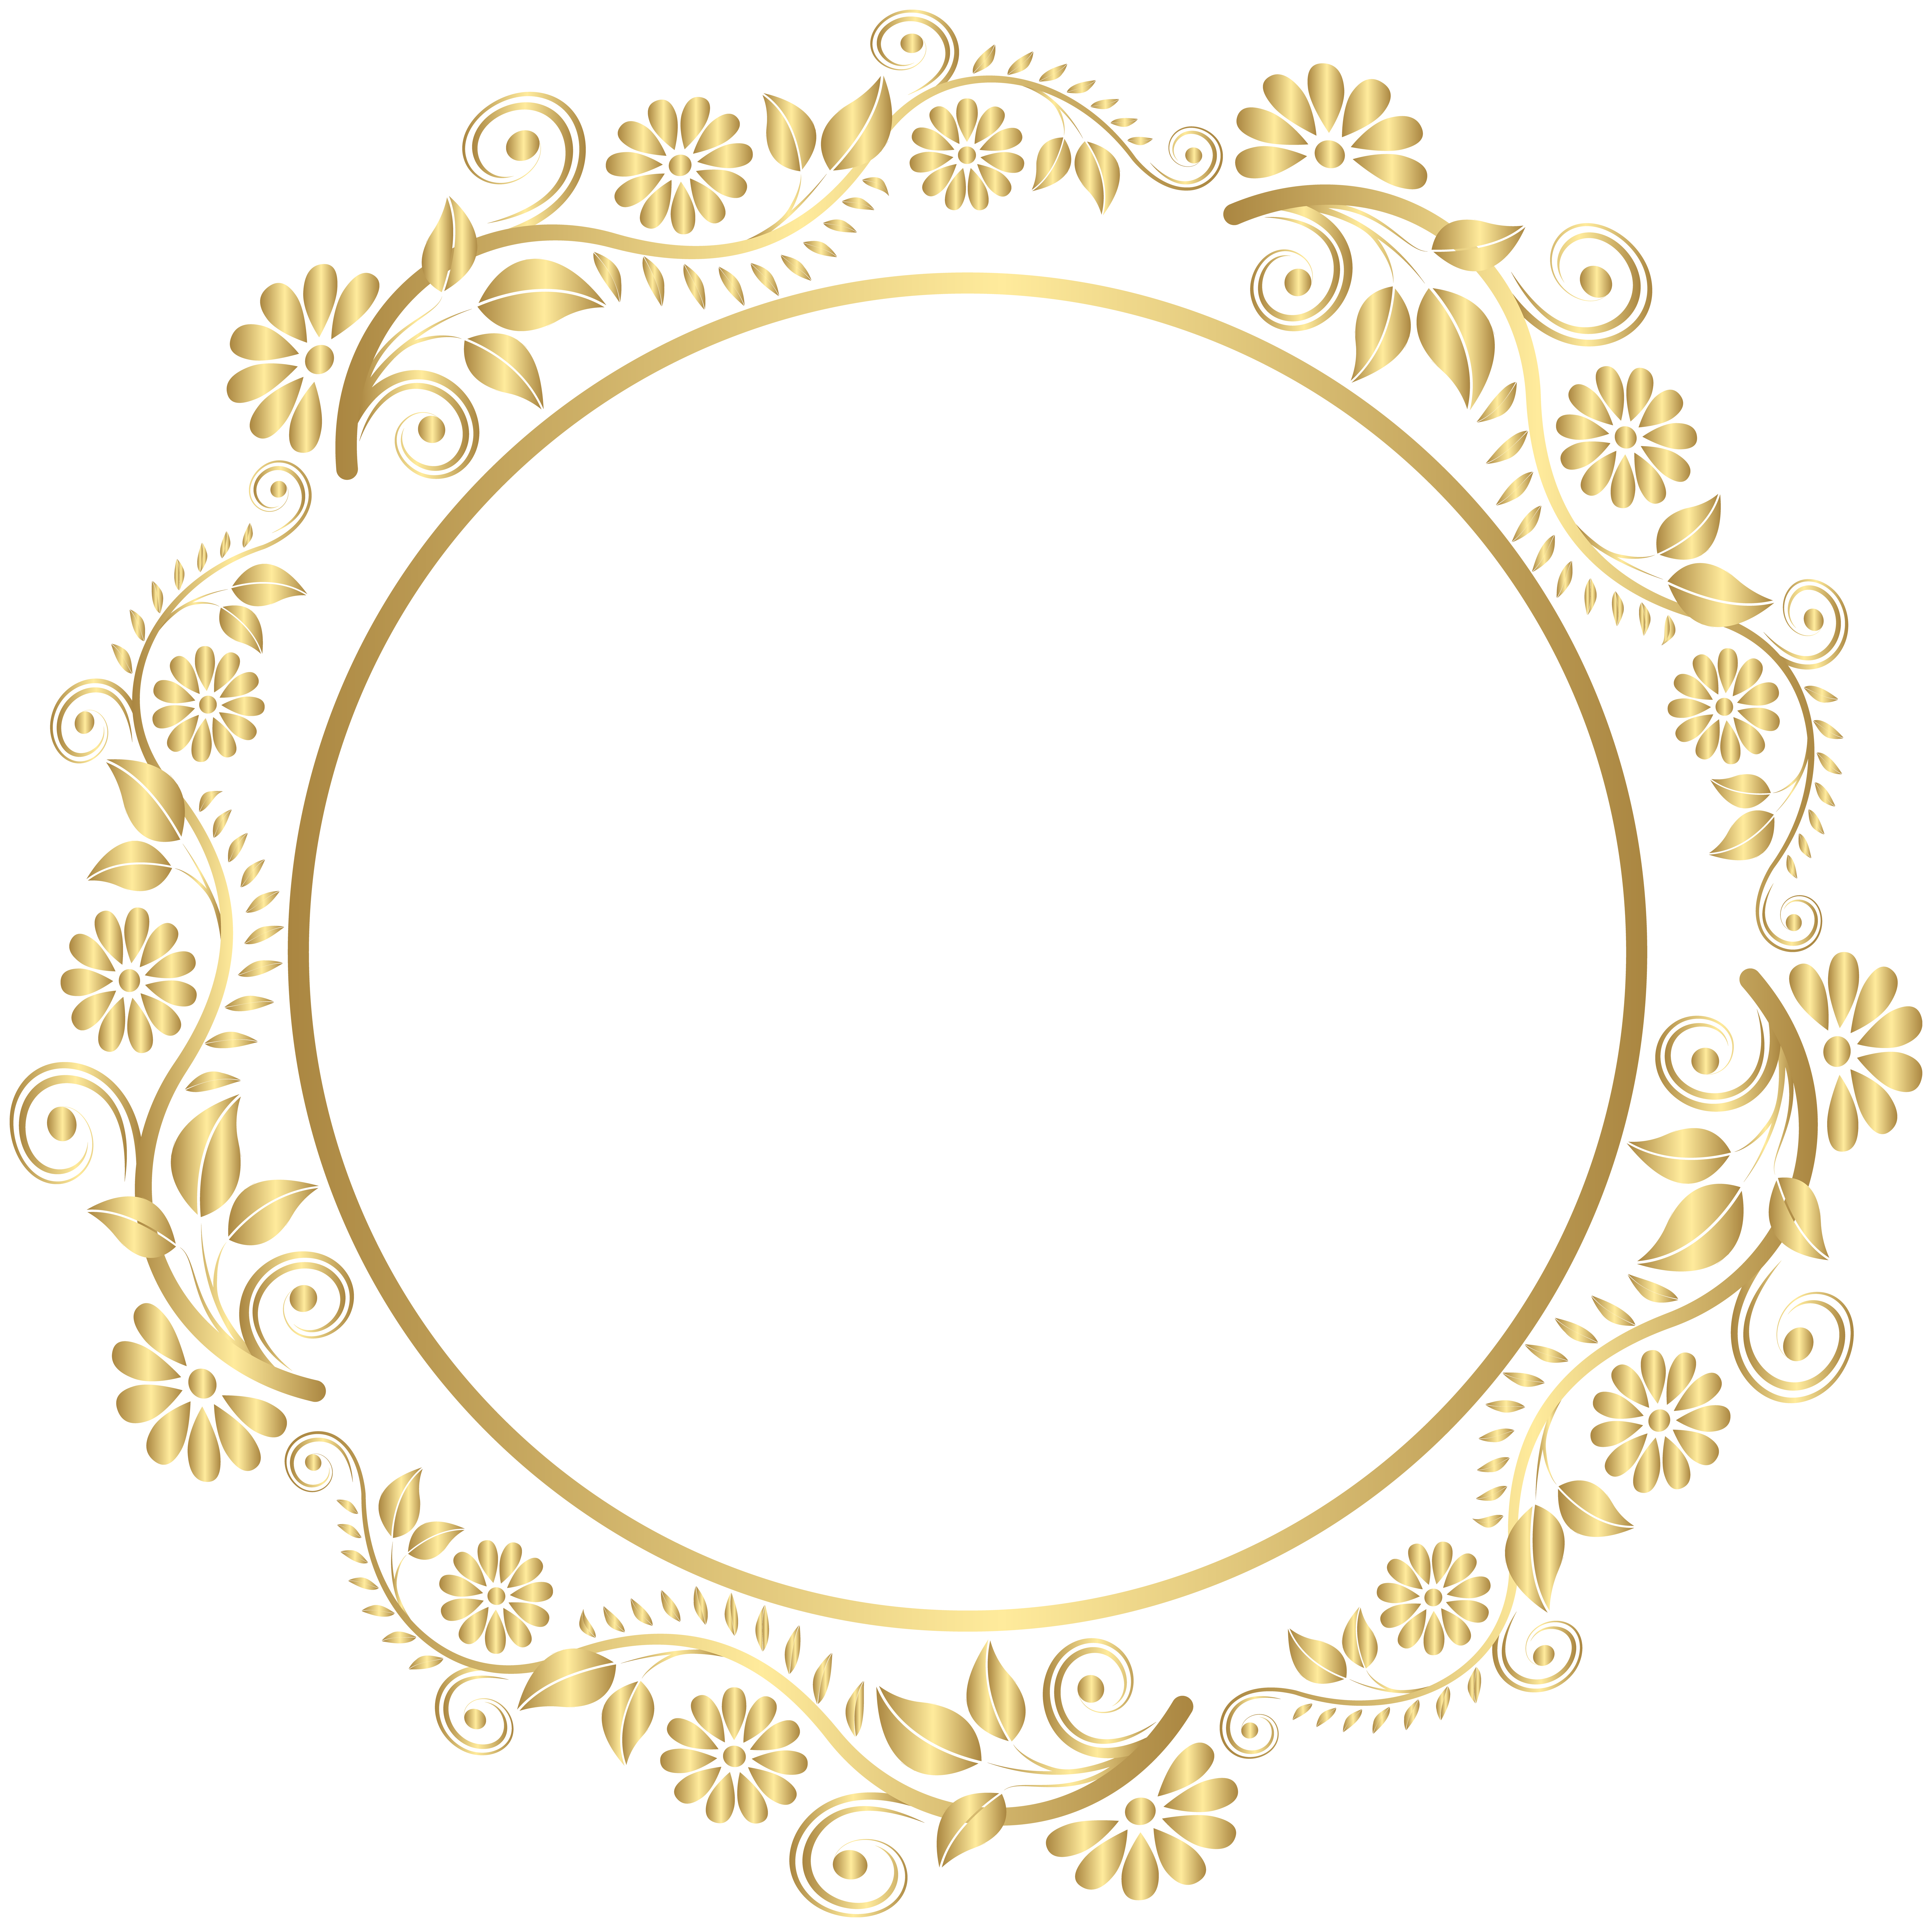 Round gold frame deco. Clipart coffee border